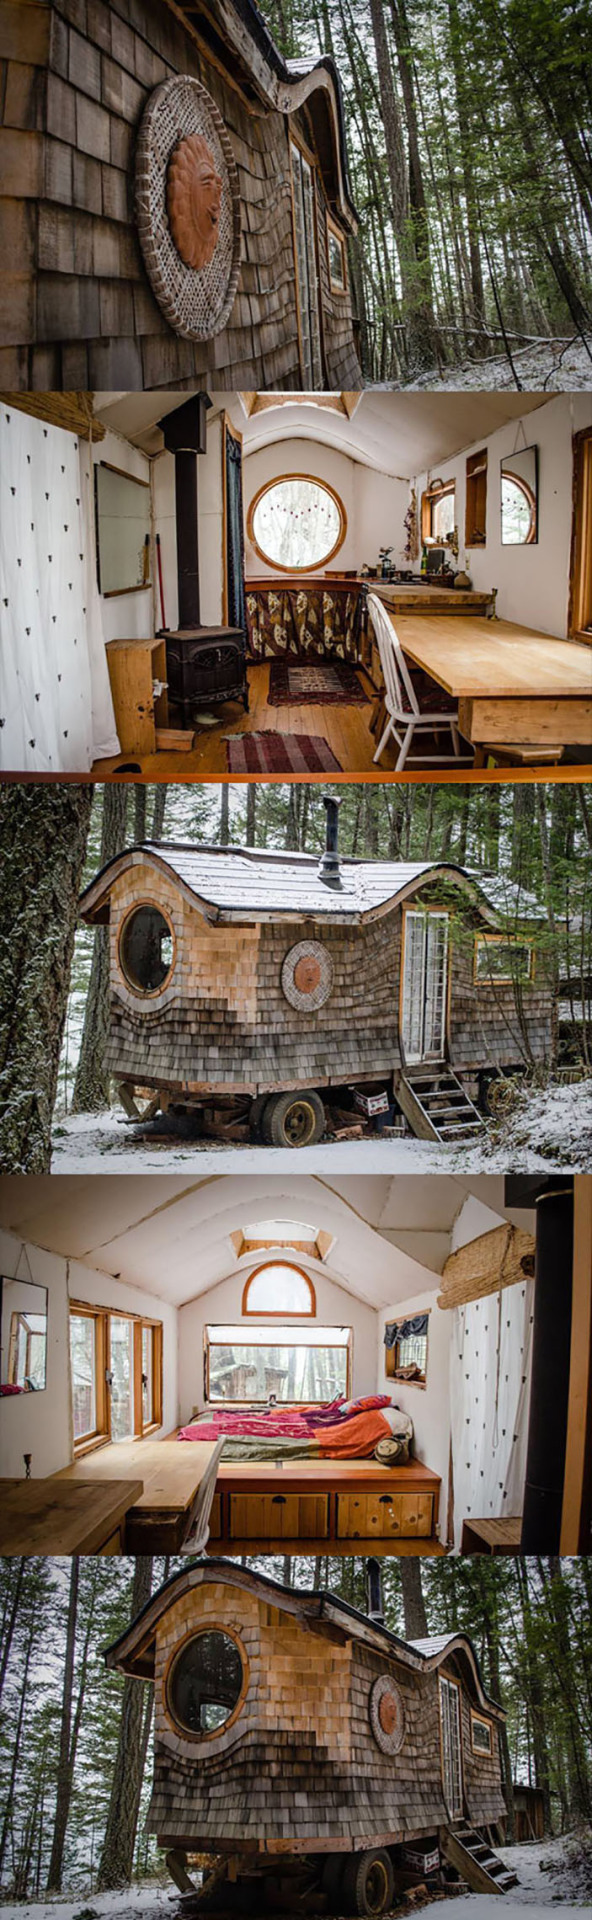 Small Tiny Houses And Interiors